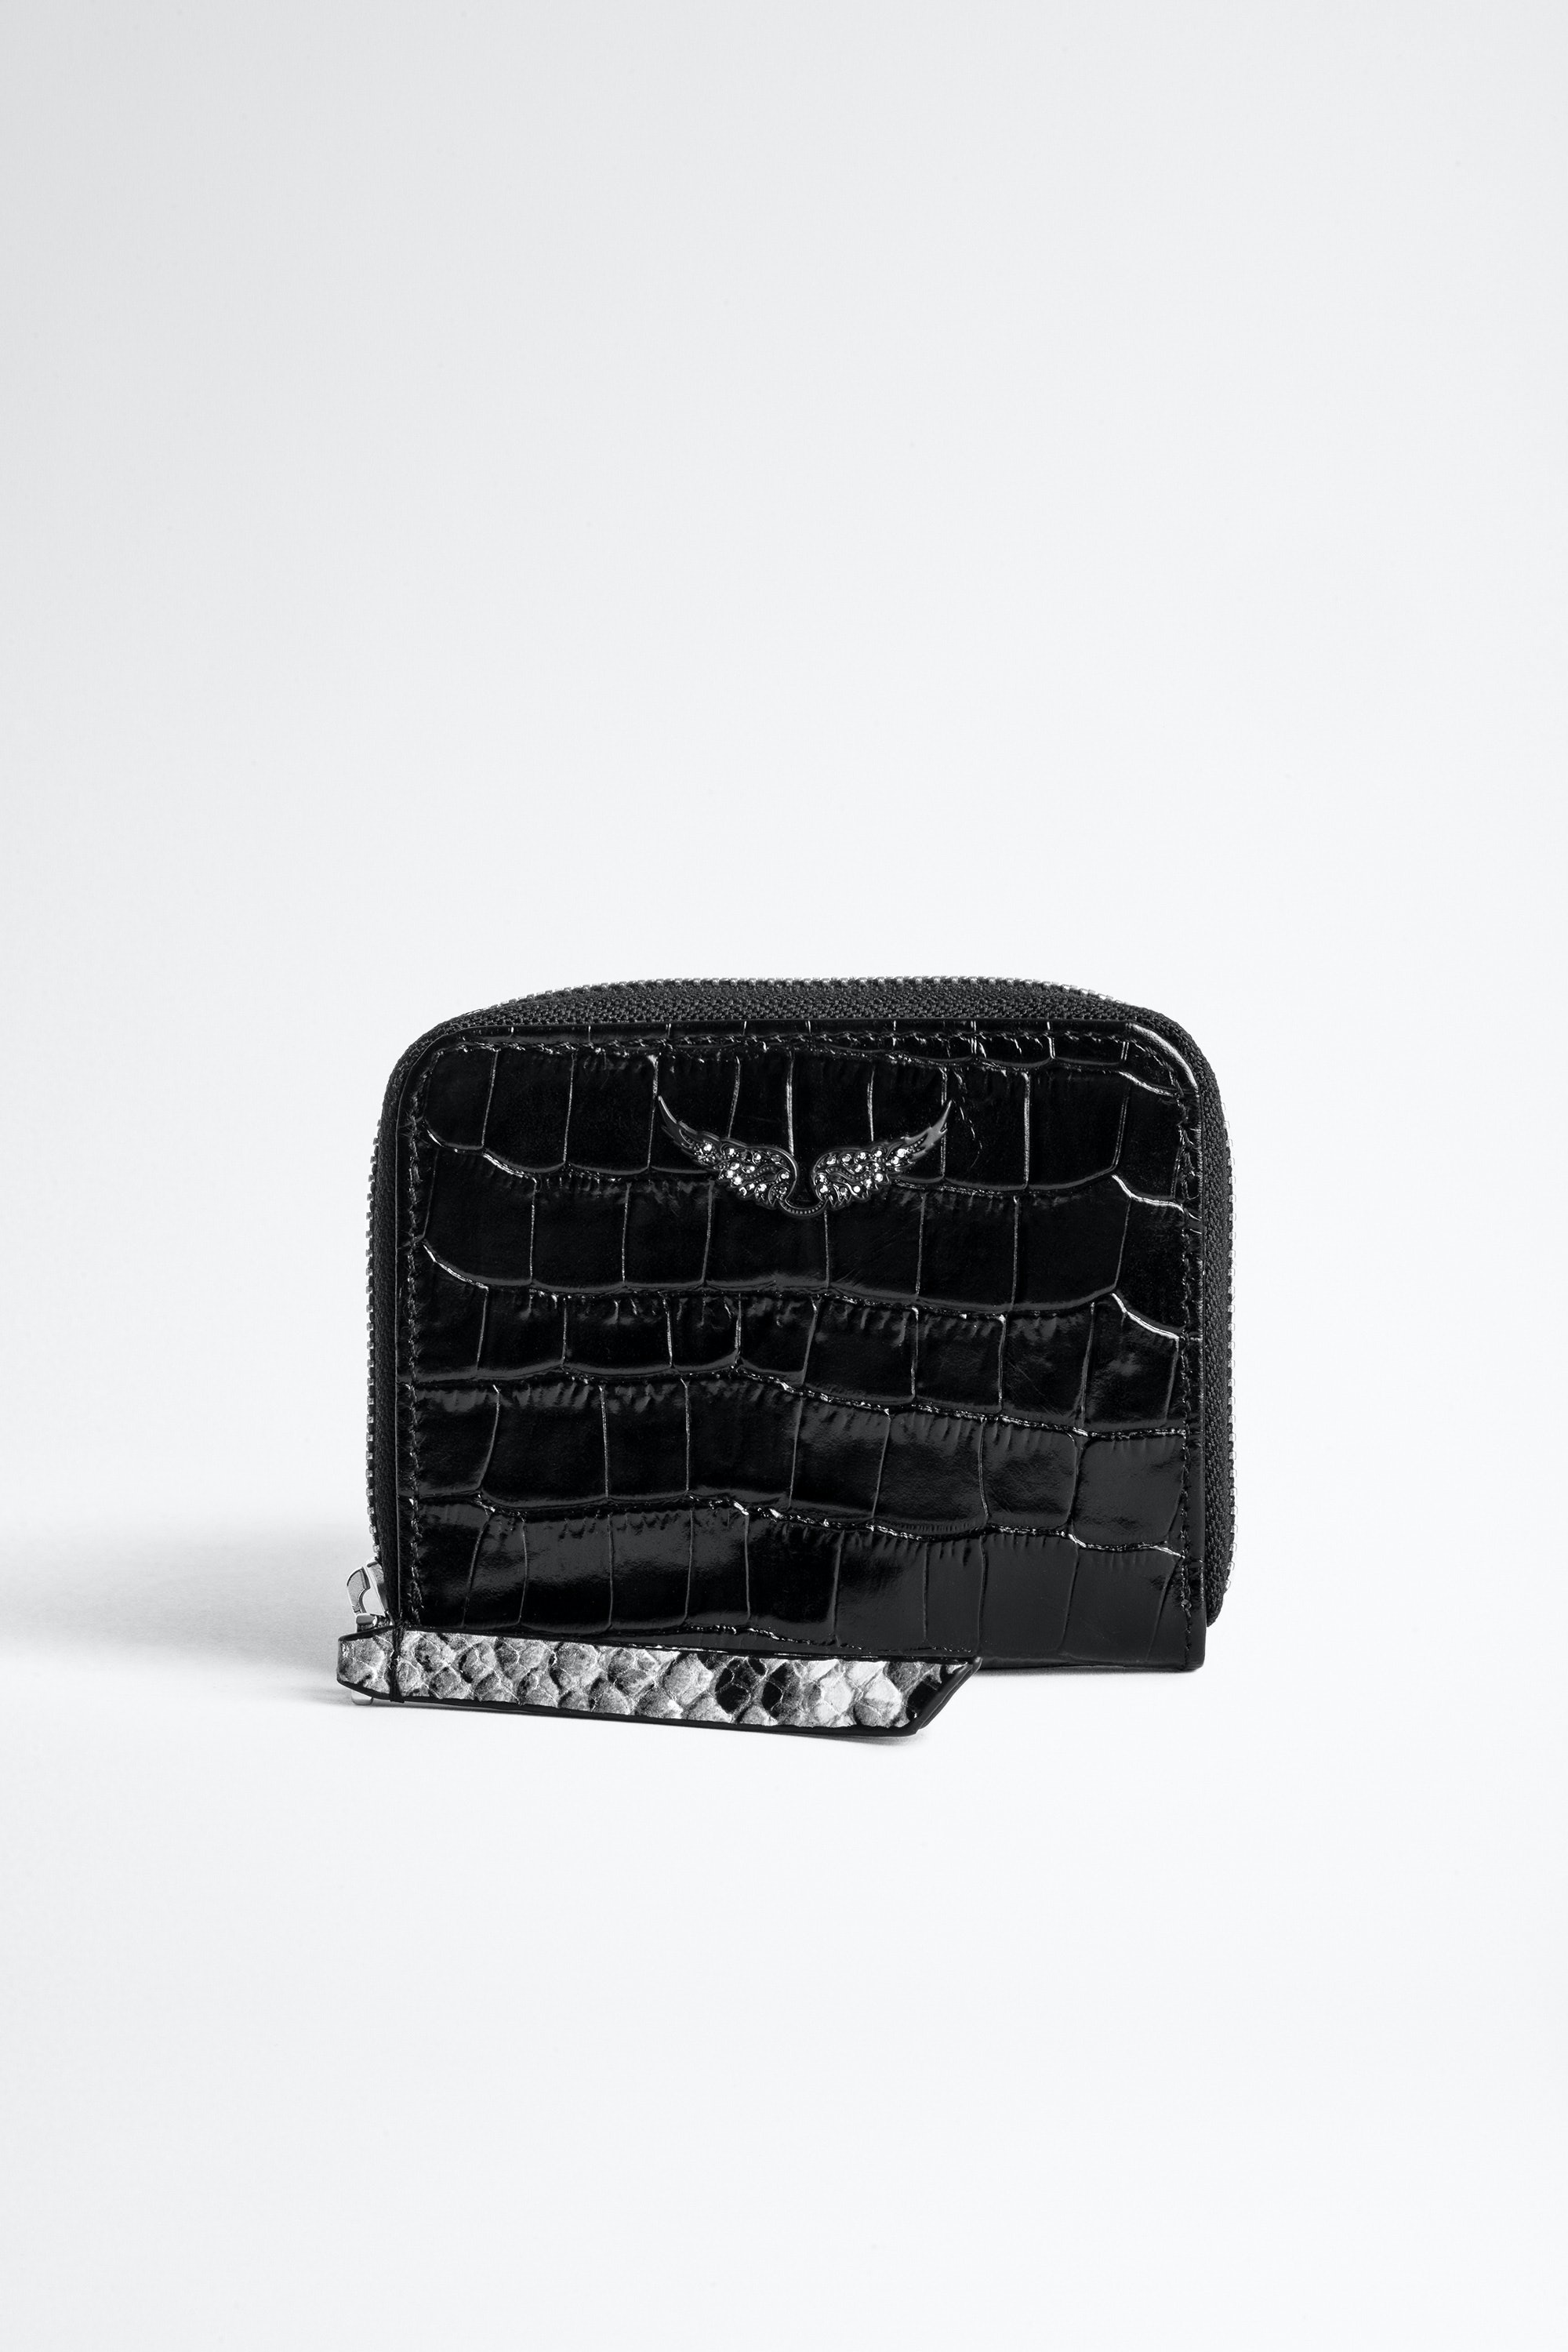 Cartera Mini ZV Croco